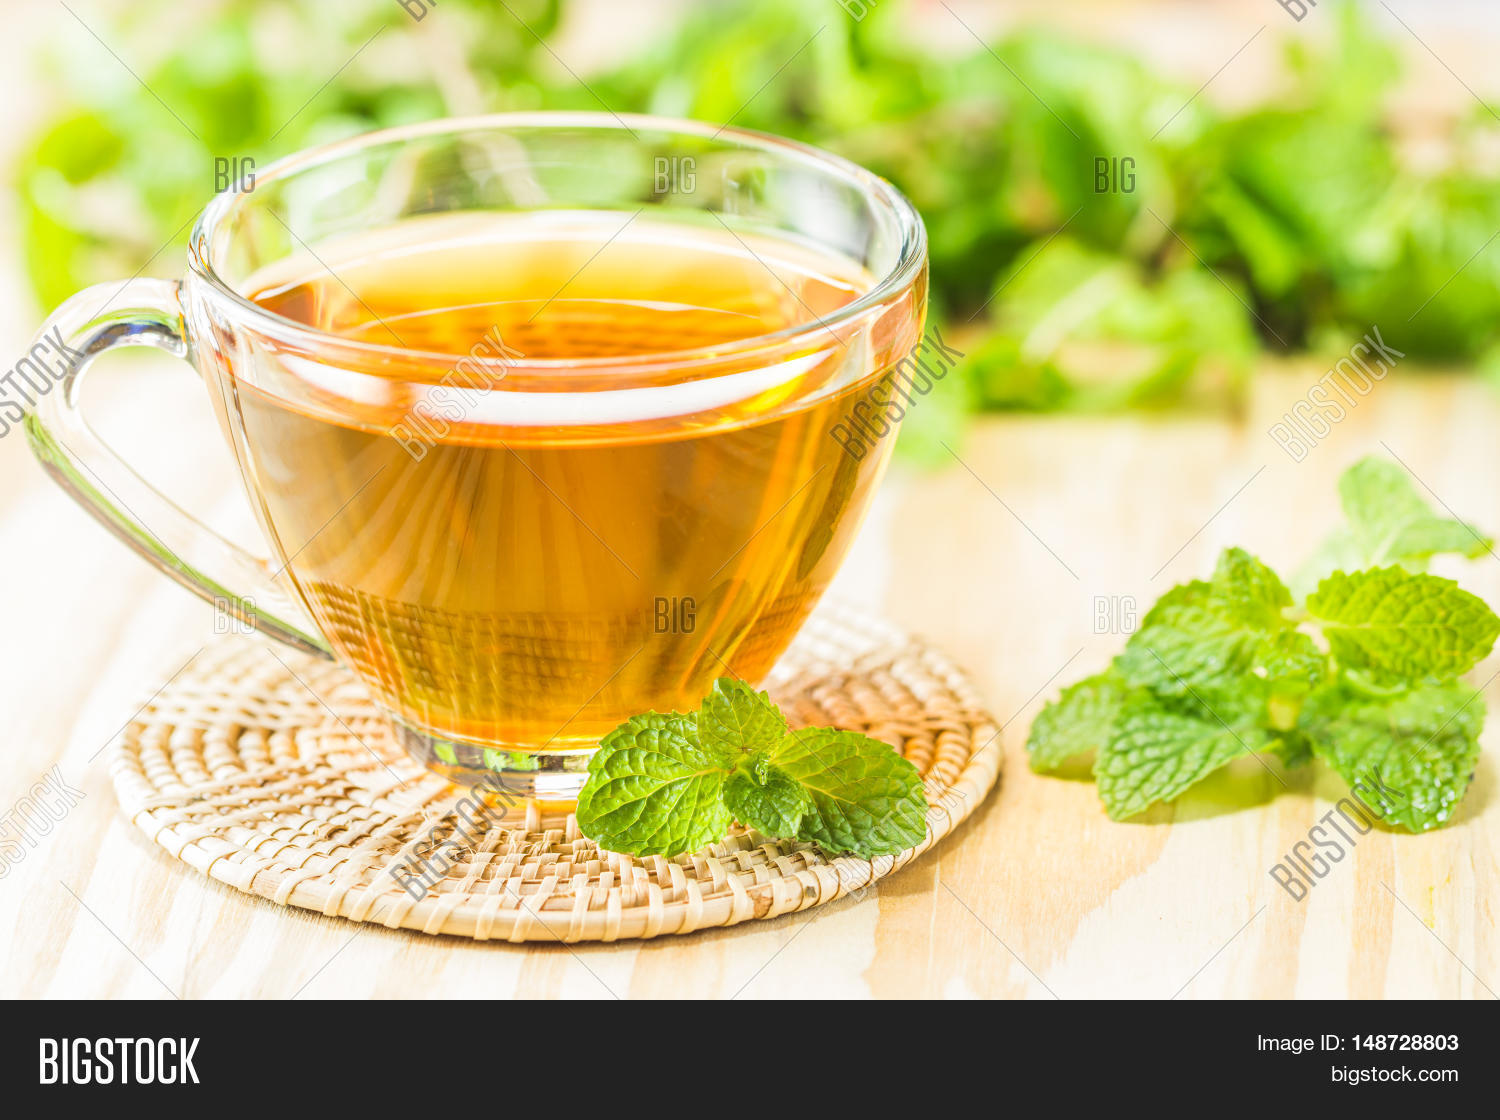 A Cup Of Tea On The Wood Table You Can Apply For Background Backdrop Wallpaper Including Website De 148728803 Image Stock Photo